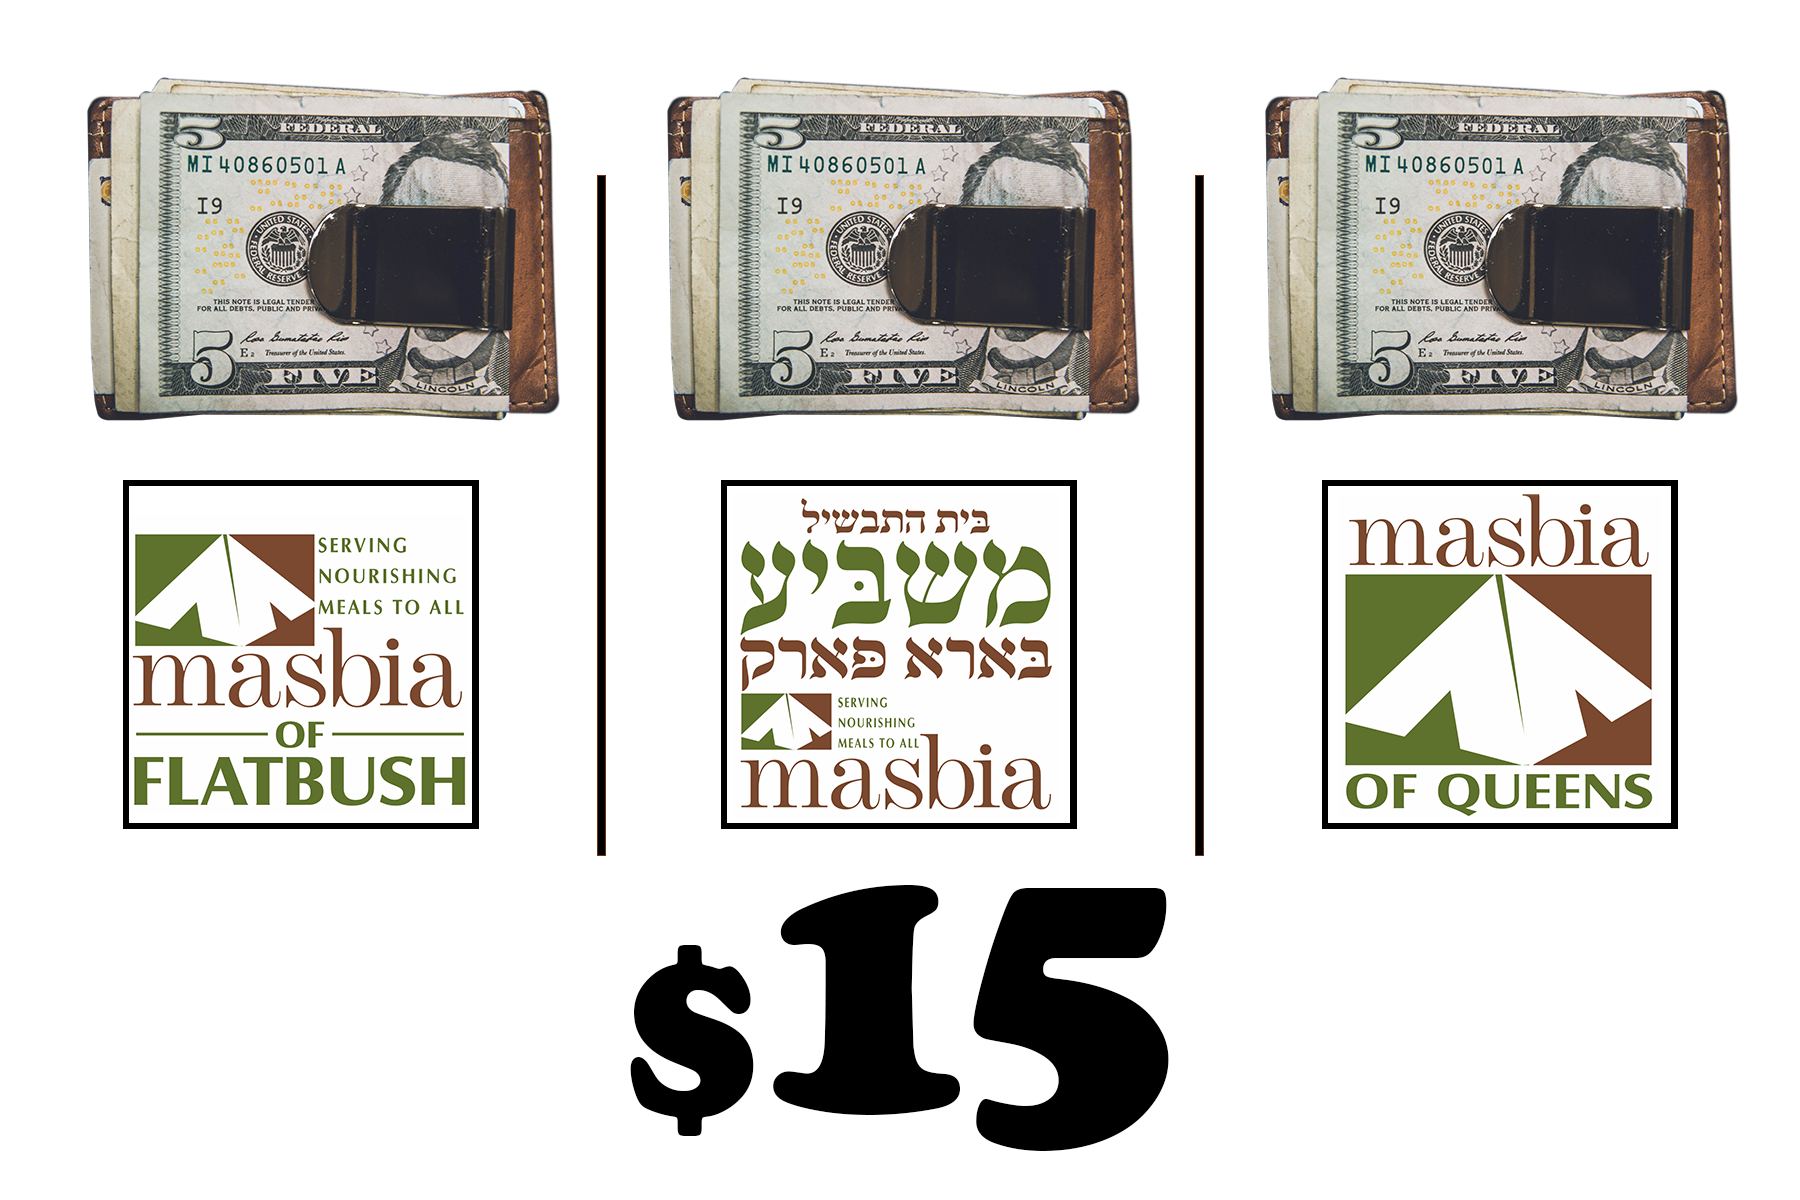 masbia charity food match goal of donor